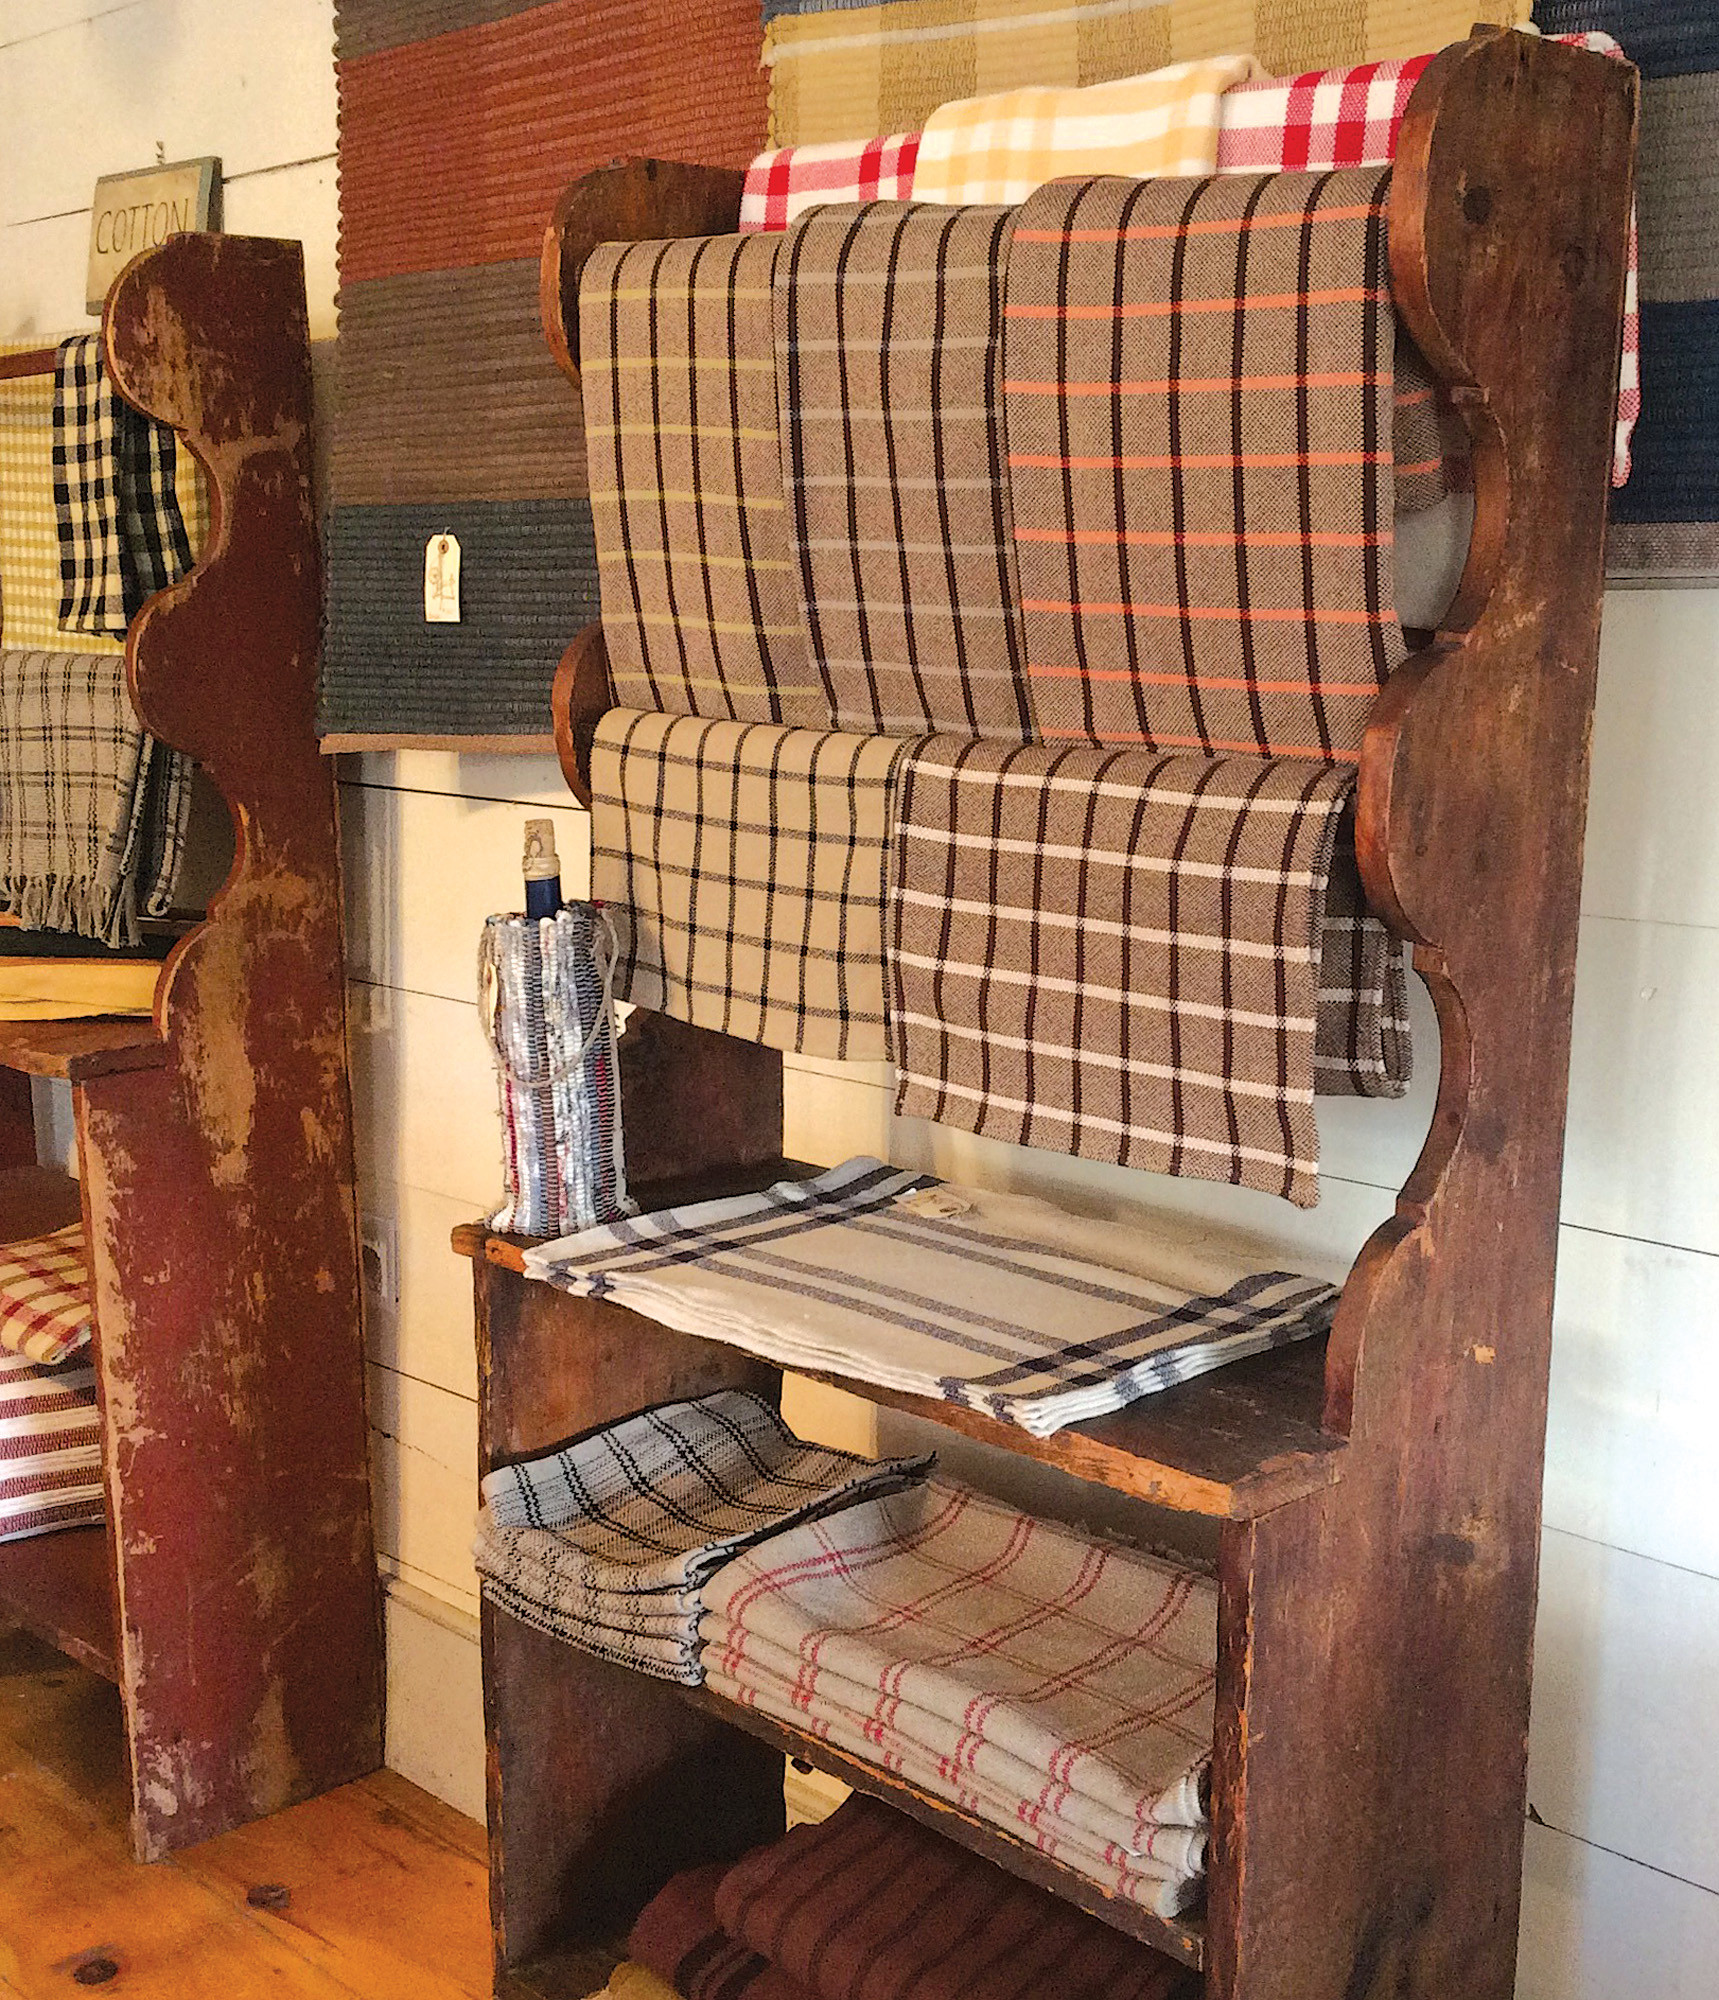 Ready-made textiles on a rack include tablecloths and runners.